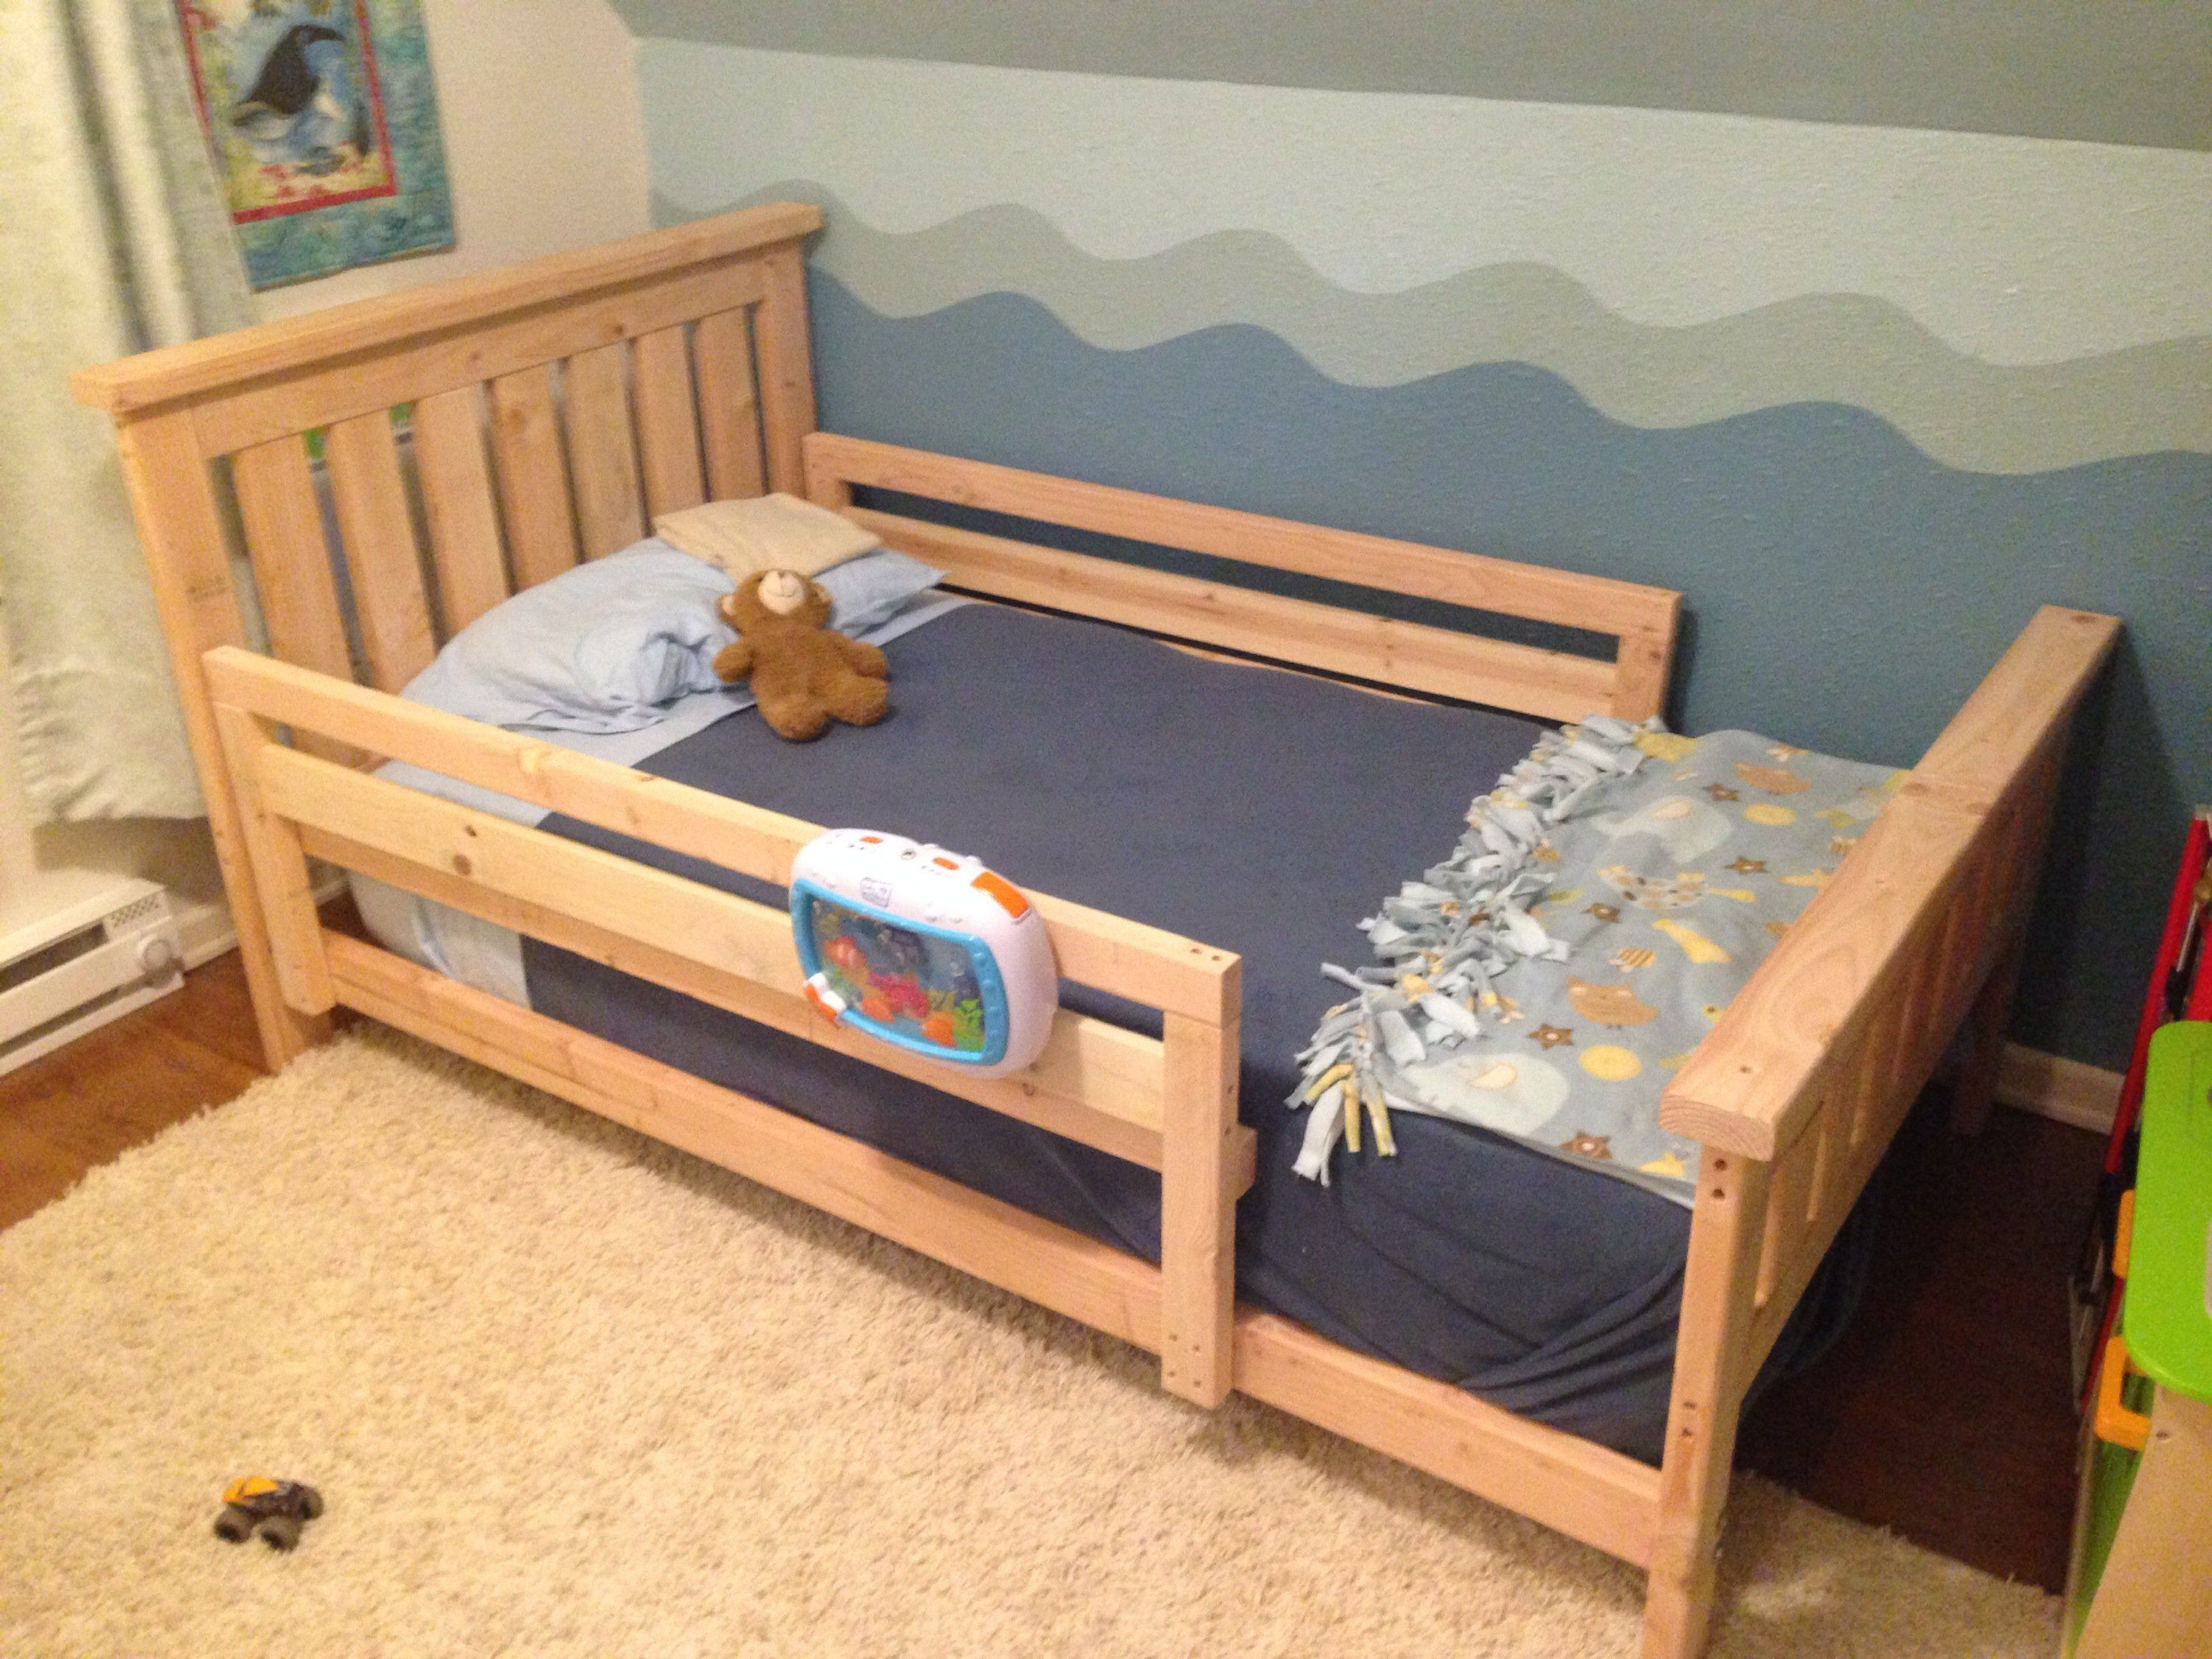 Best ideas about DIY Kids Bed Frame . Save or Pin DIY 2x4 Bed Frame bebos shared room Now.